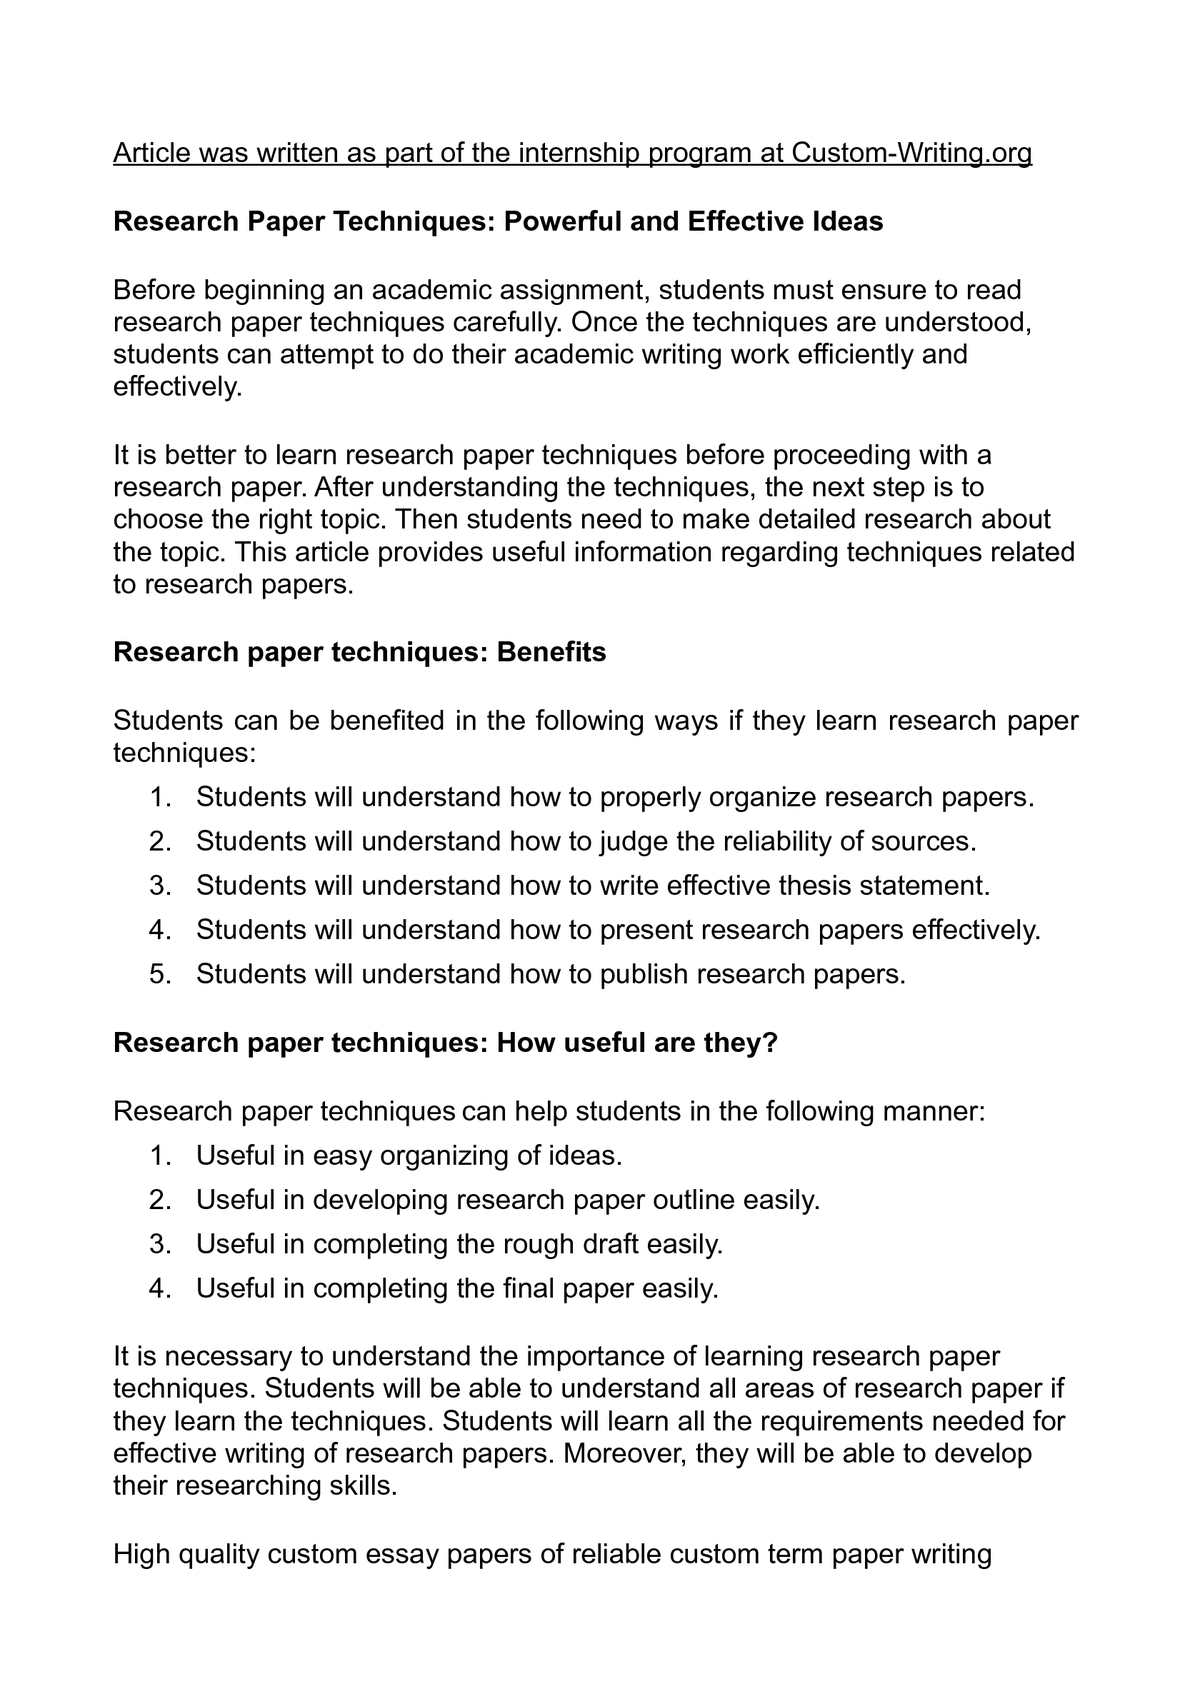 003 Ideas For Research Paper Fascinating Papers In Economics High School College Full